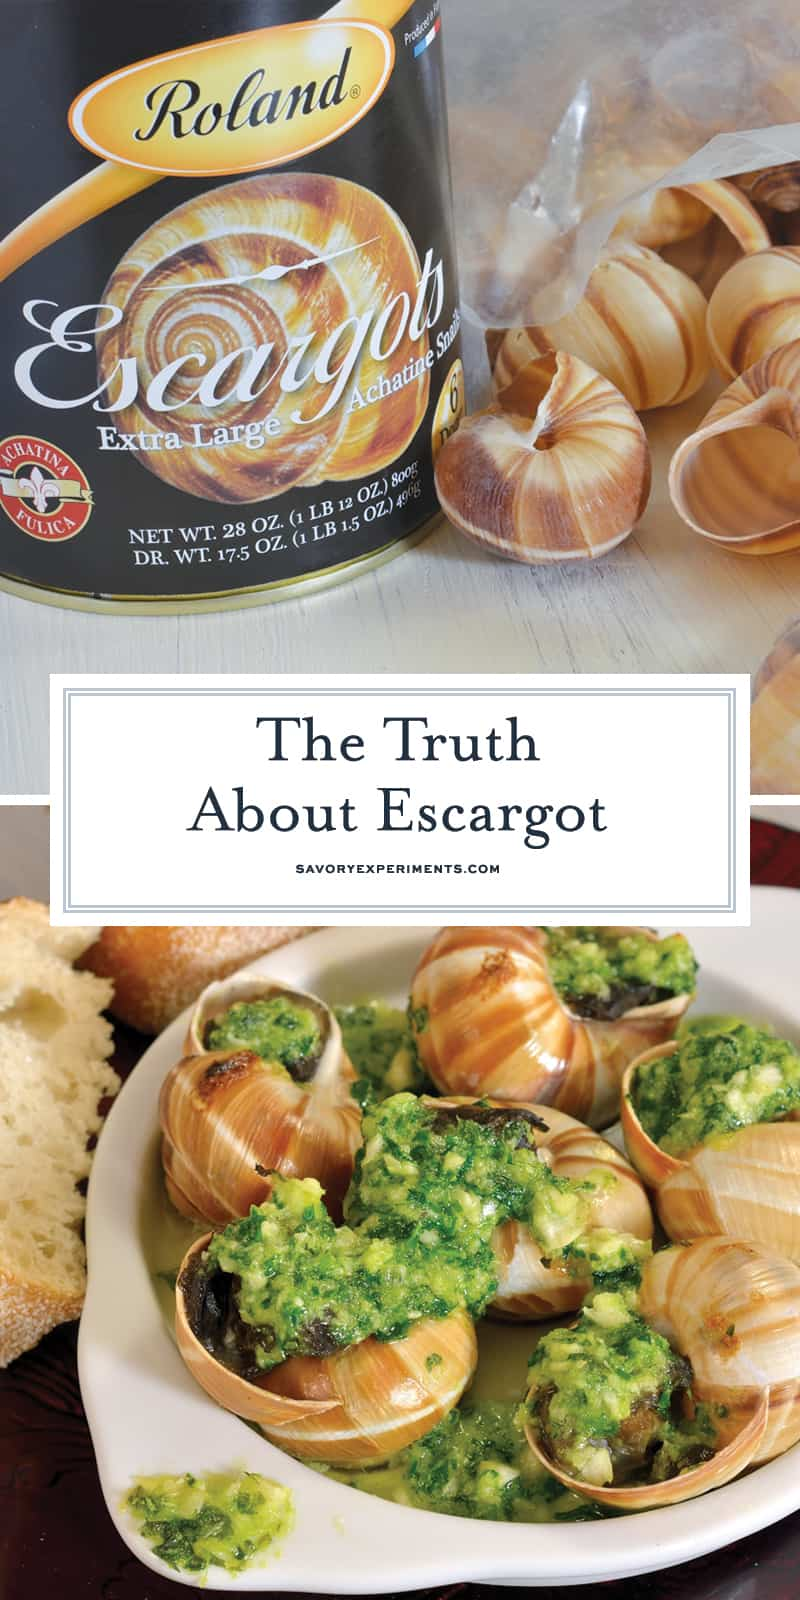 Escargot aren't nearly as difficult to make at home as you might think. Here are a few tips on how to make escargot! #escargot #howtomakeescargot www.savoryexperiments.com